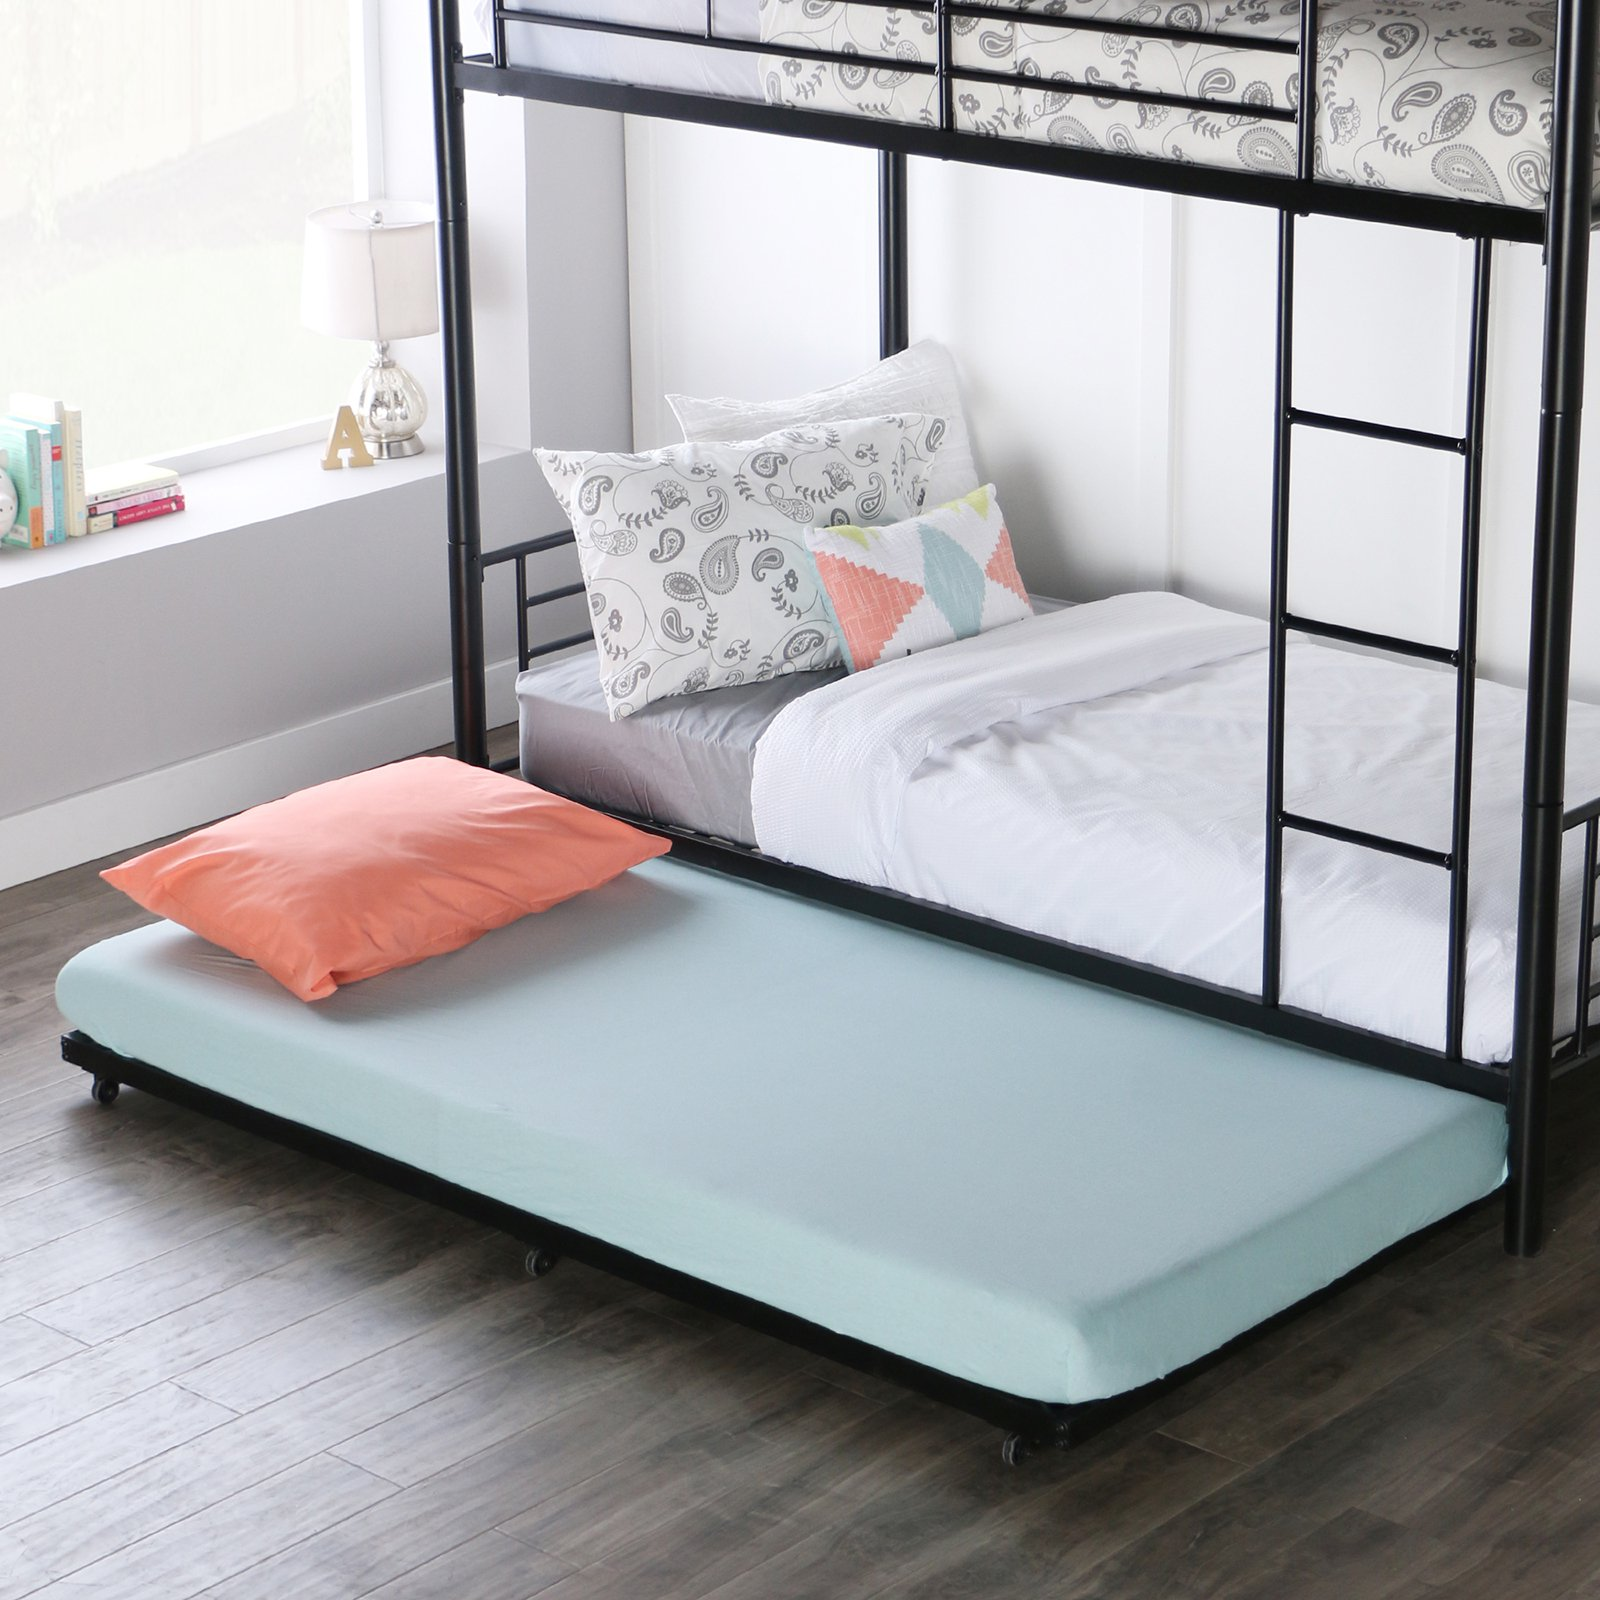 Twin Roll Out Trundle Bed Frame Trundle Bed Frame Twin Trundle